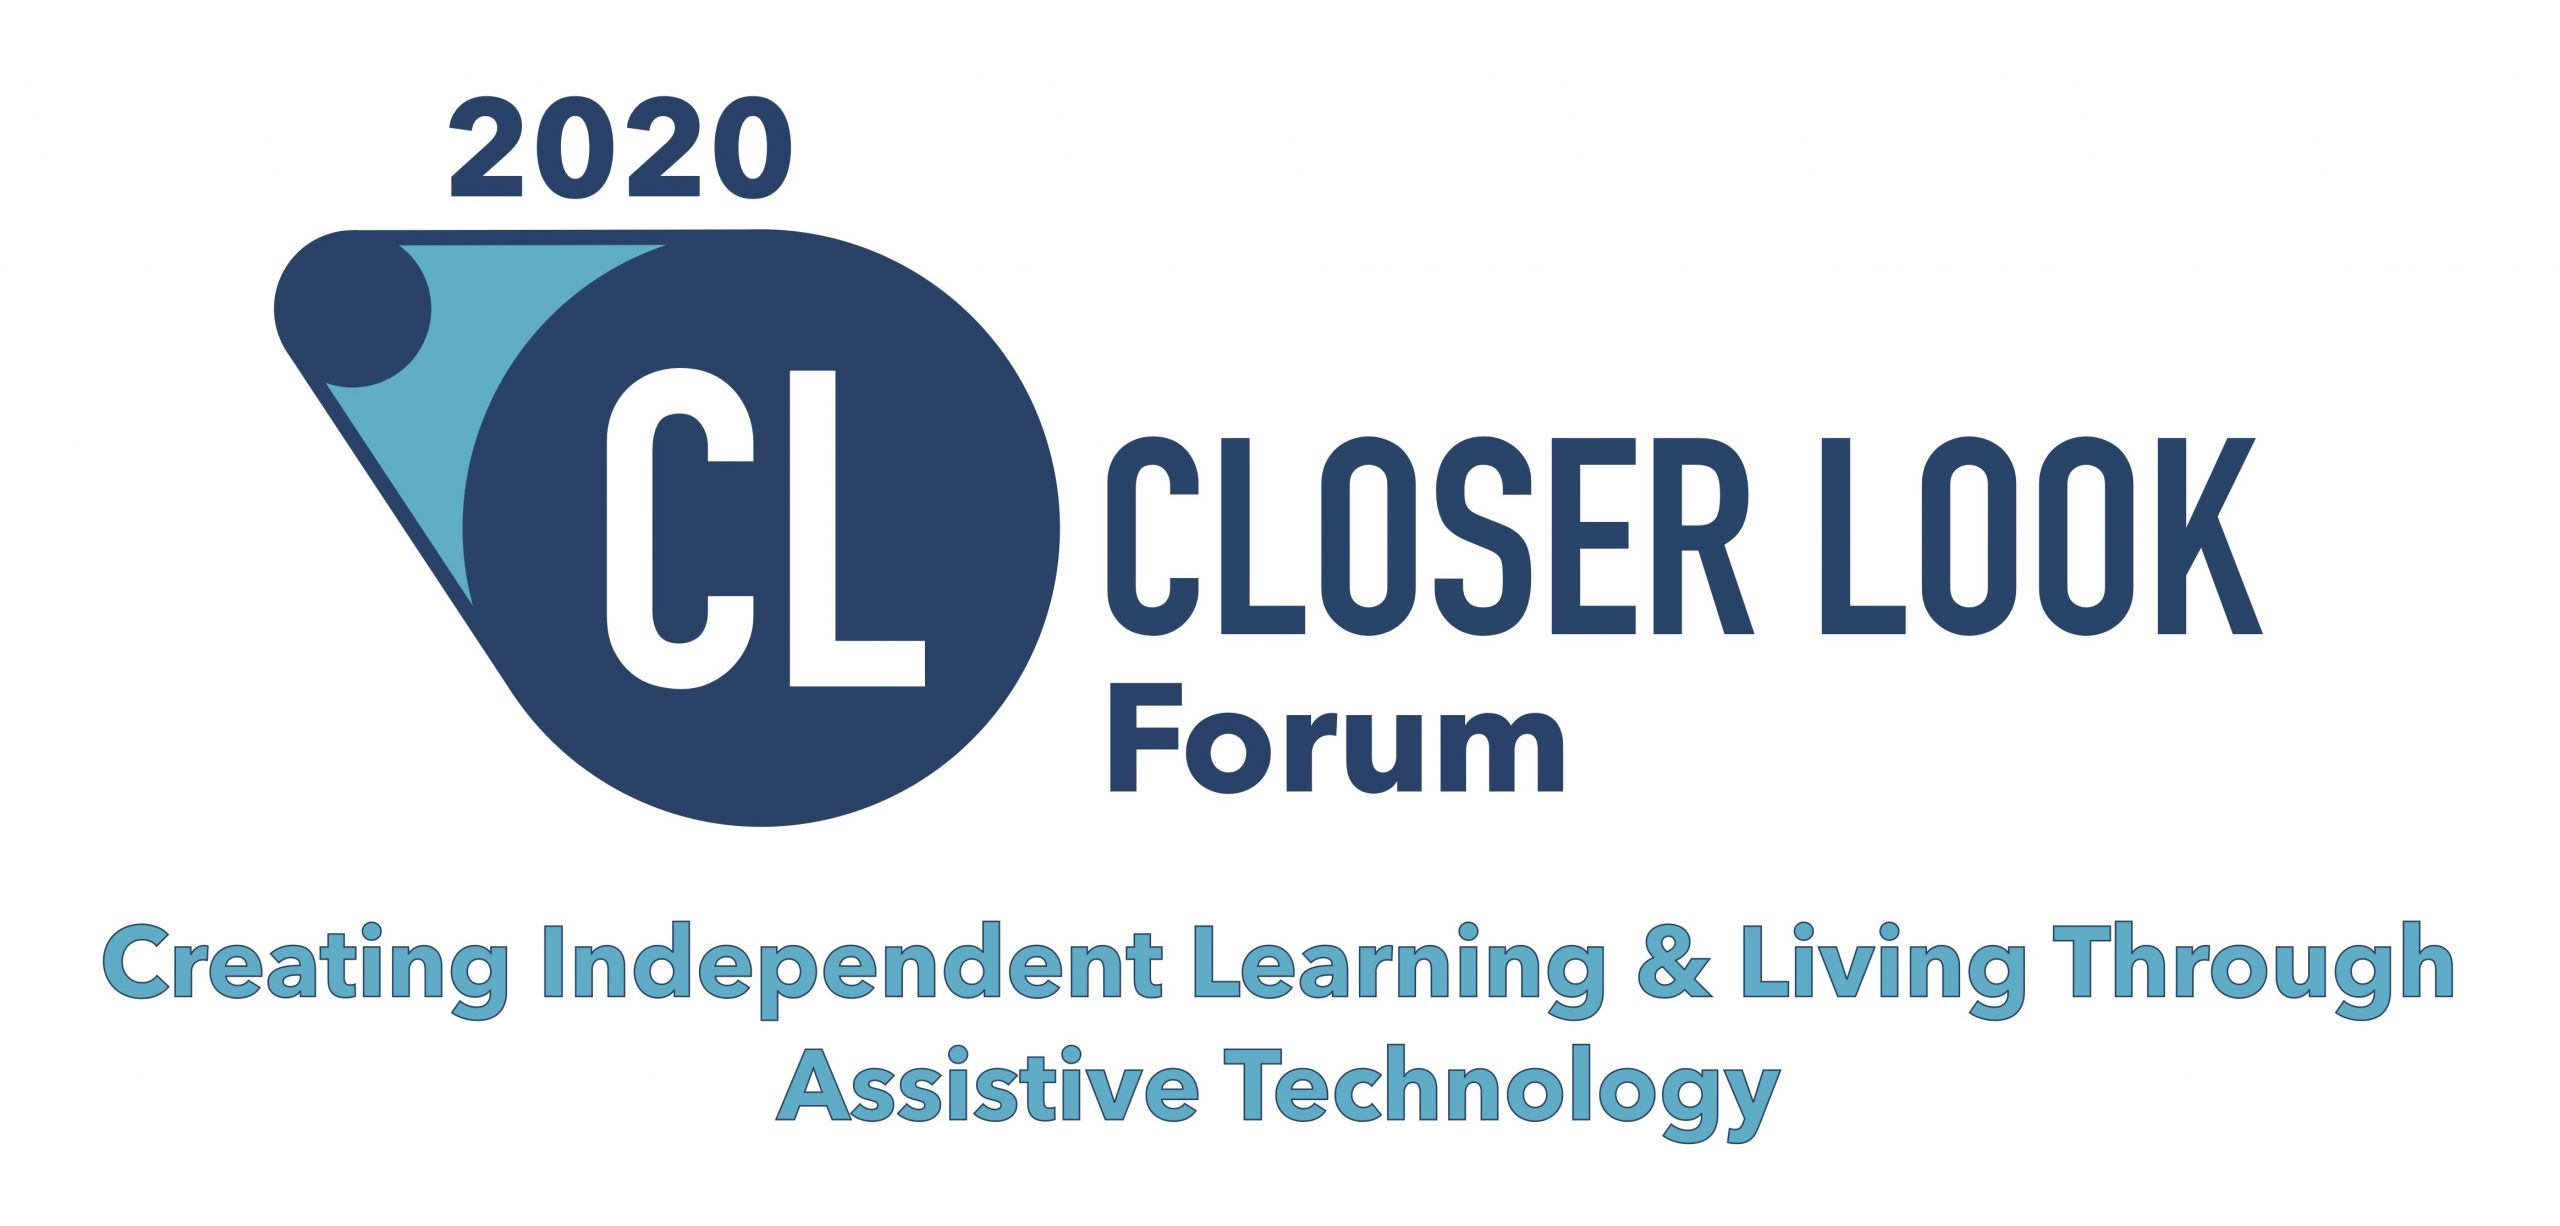 2020 Closer Look Forum, Creating Independent Learning & Living Through Assistive Technology